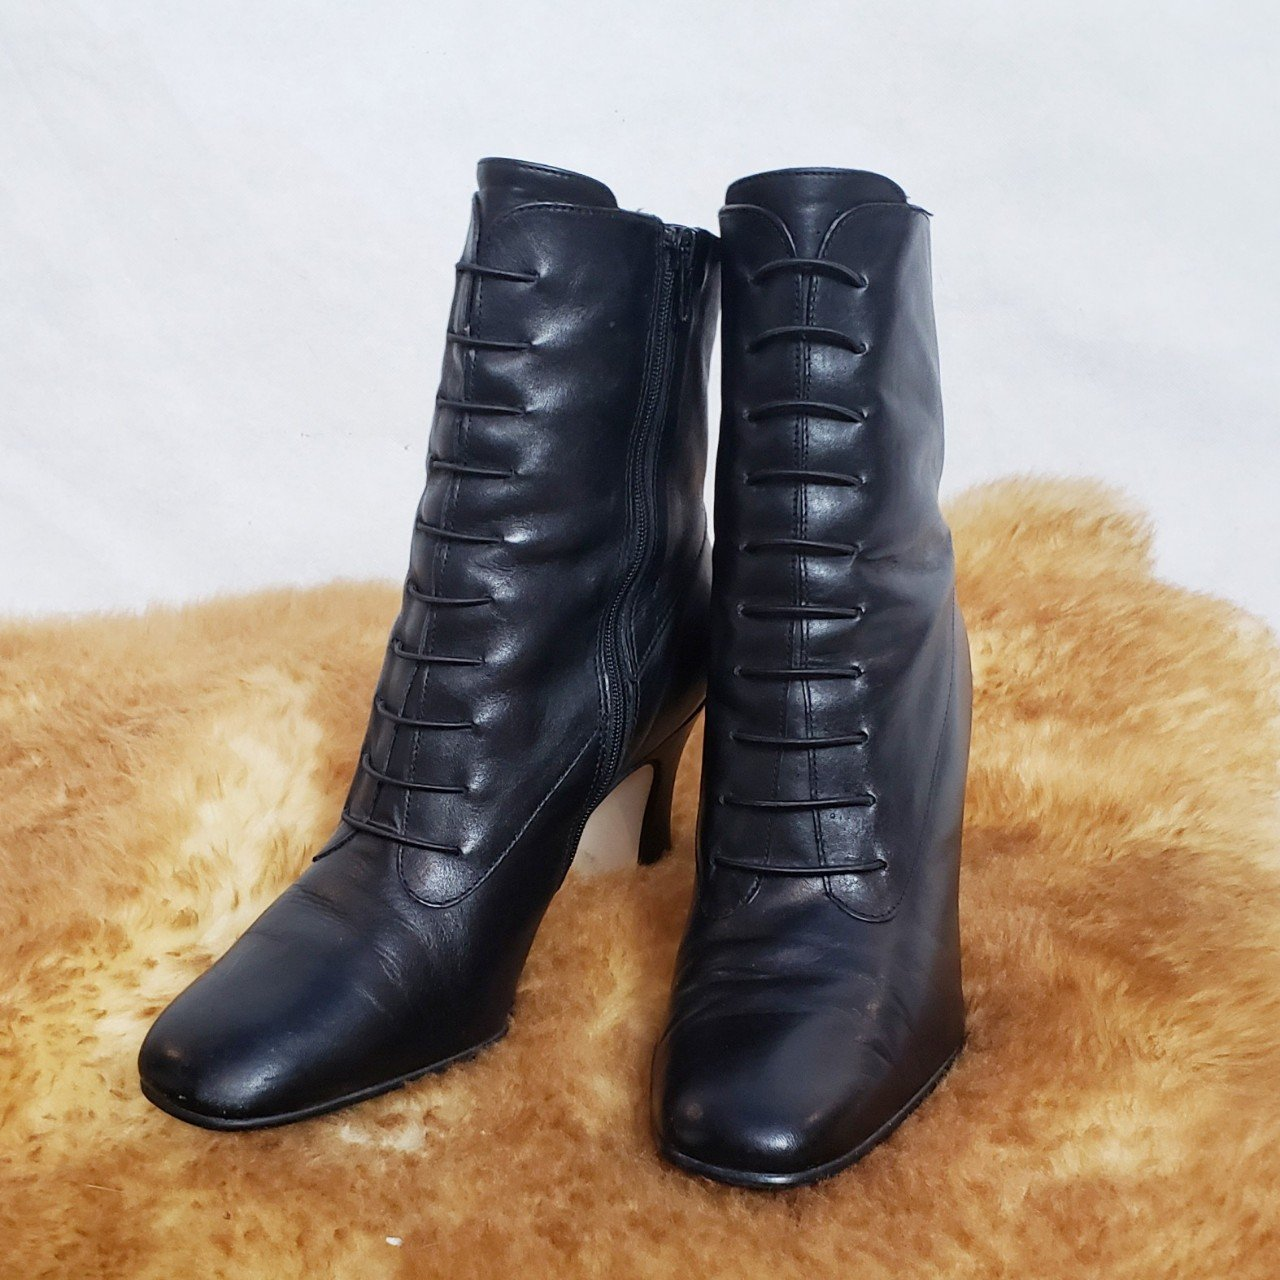 Laura Scott vintage Granny boots! 🖤Witchy with a wicked so - Depop c671d97ca